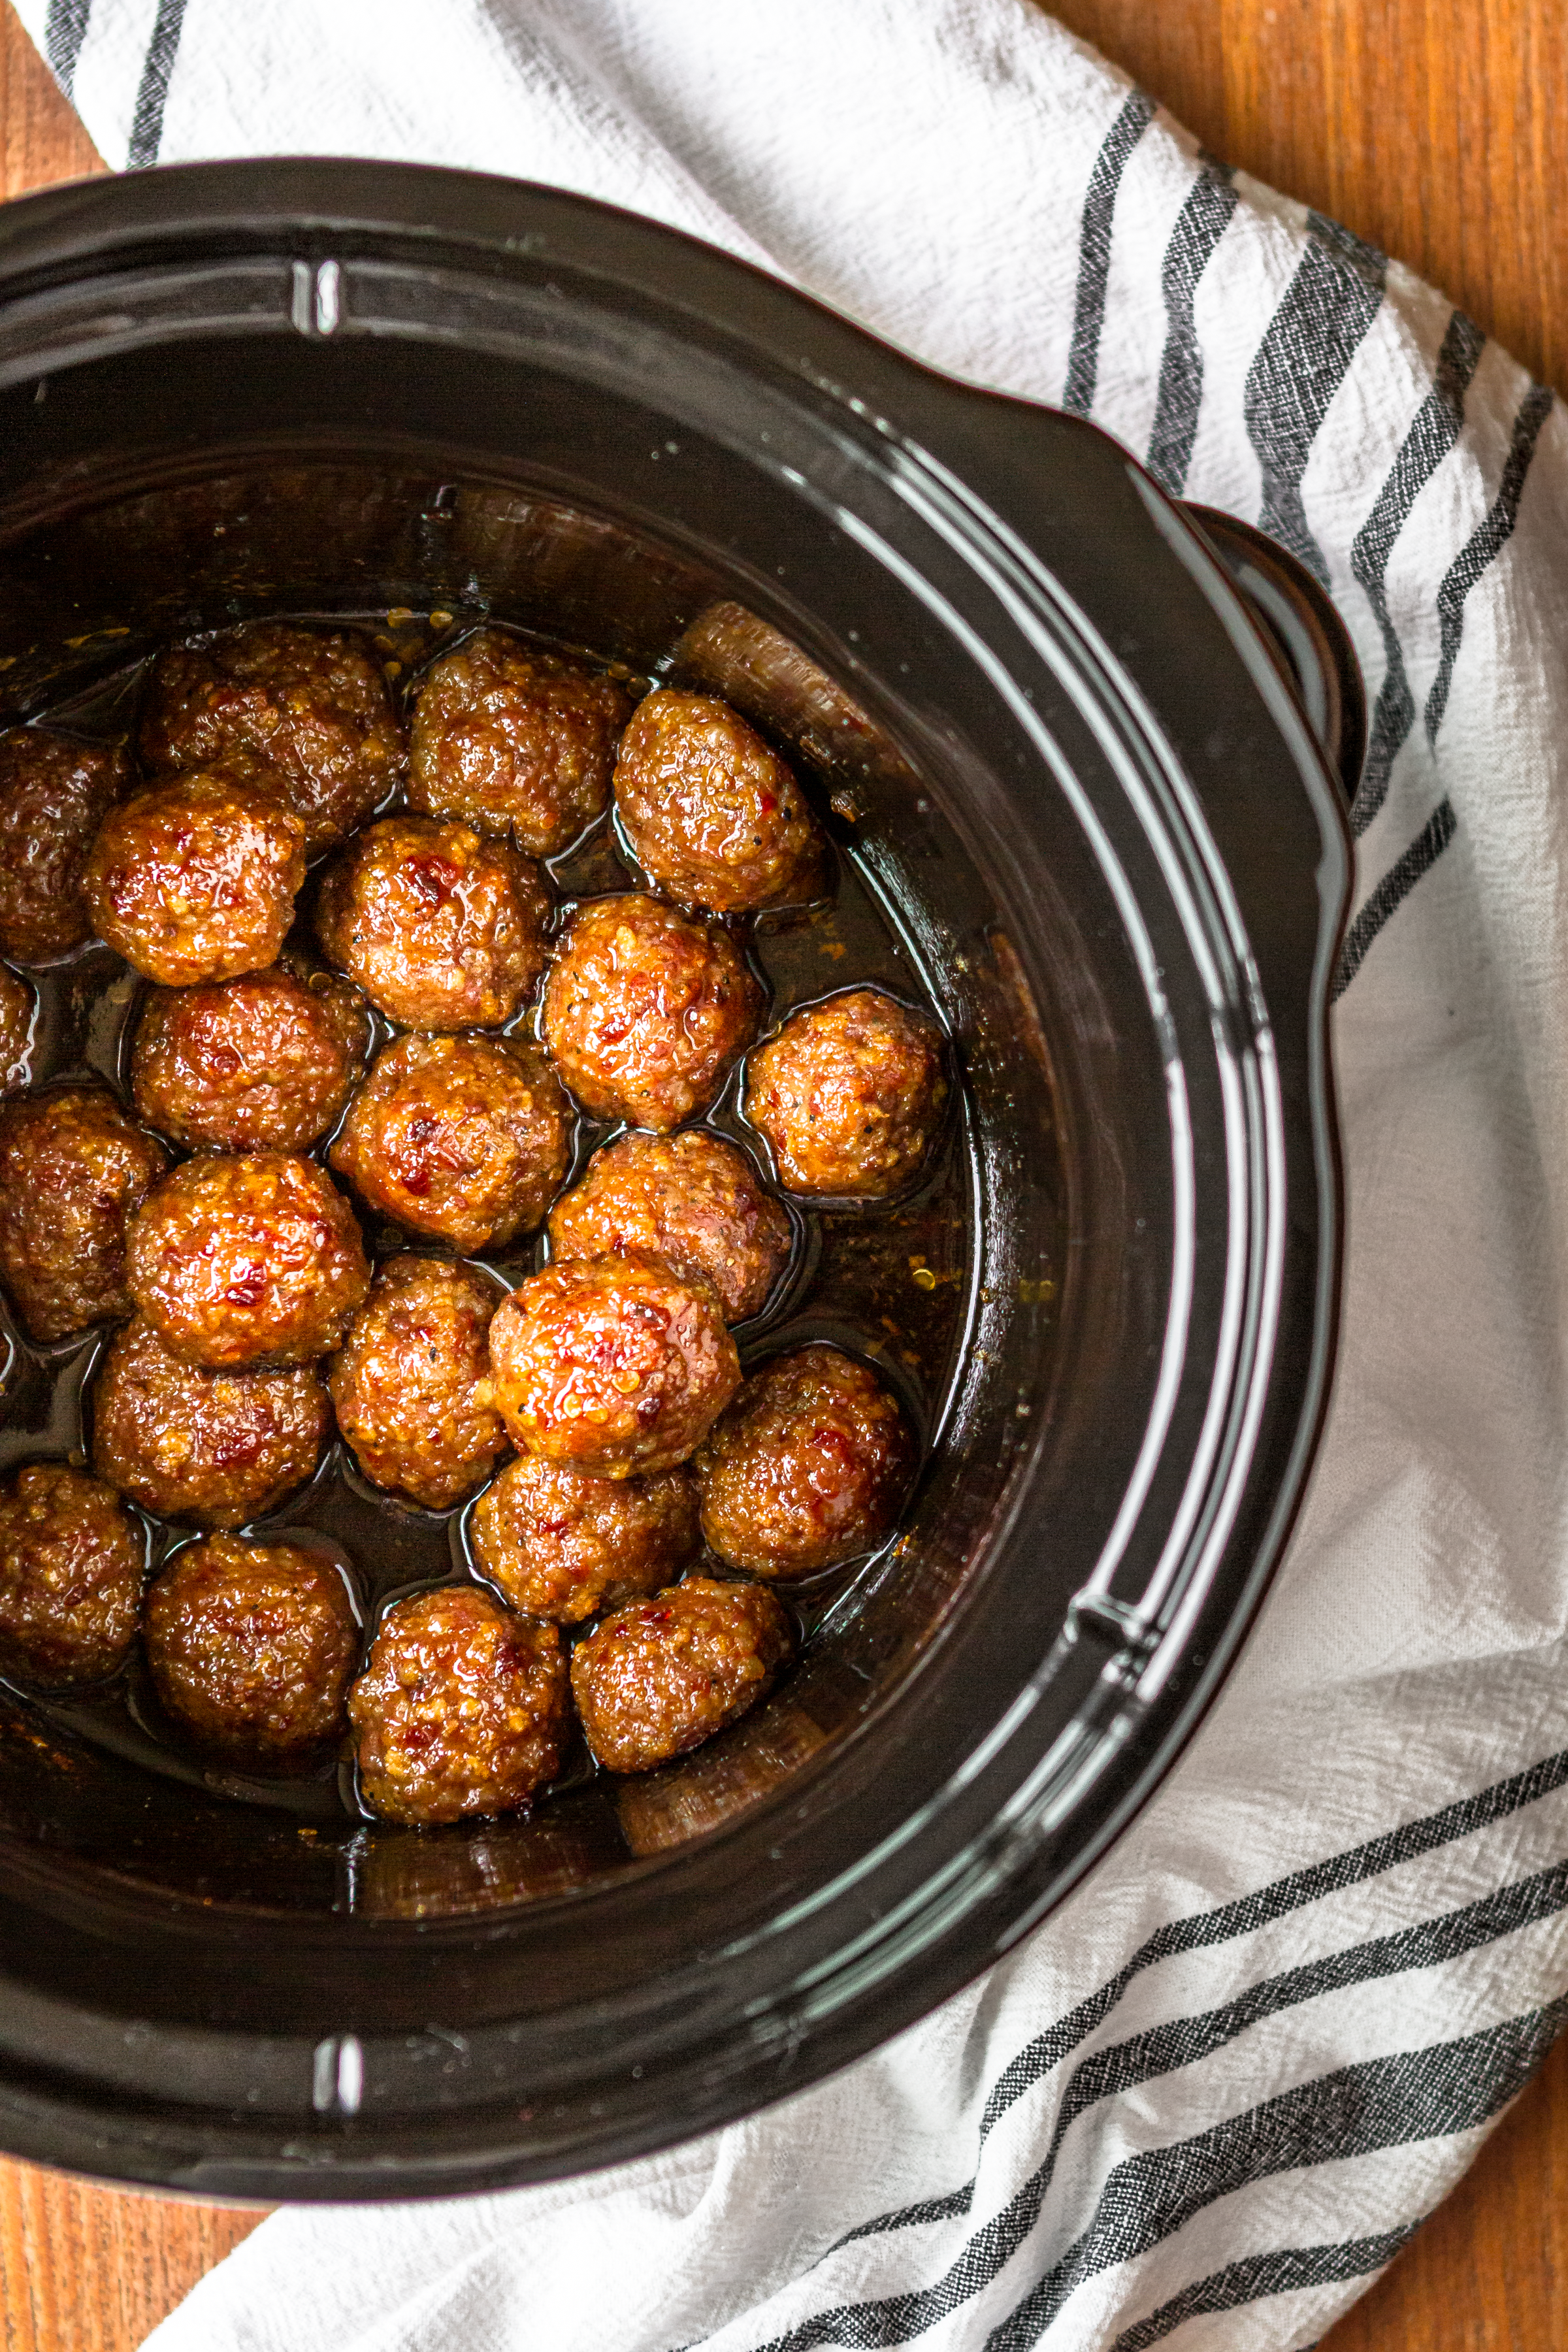 Asian meatballs crockpot view with sweet and spicy sauce and a black and white kitchen towel